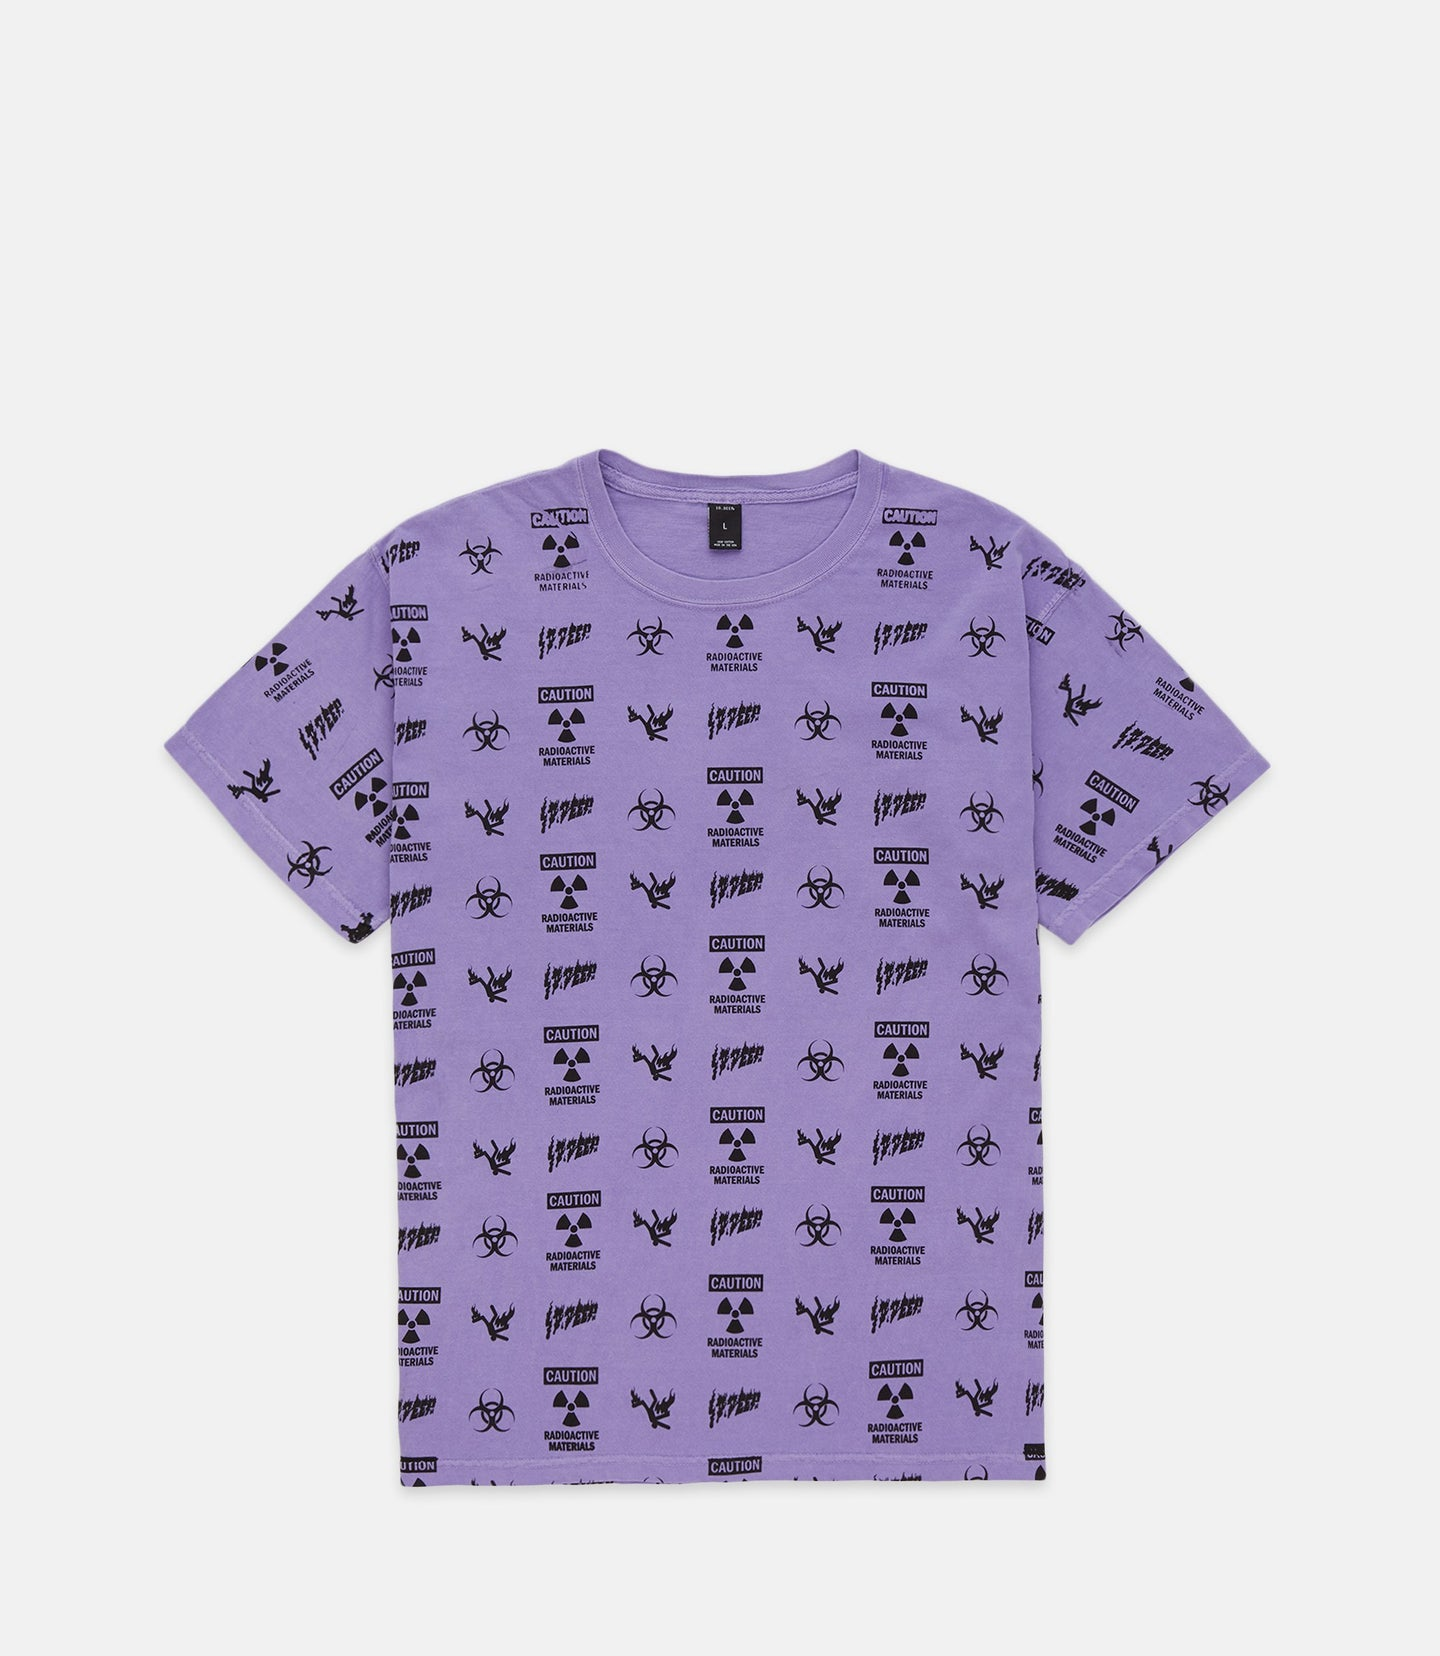 NOXIOUS FUMES S/S TEE - PURPLE